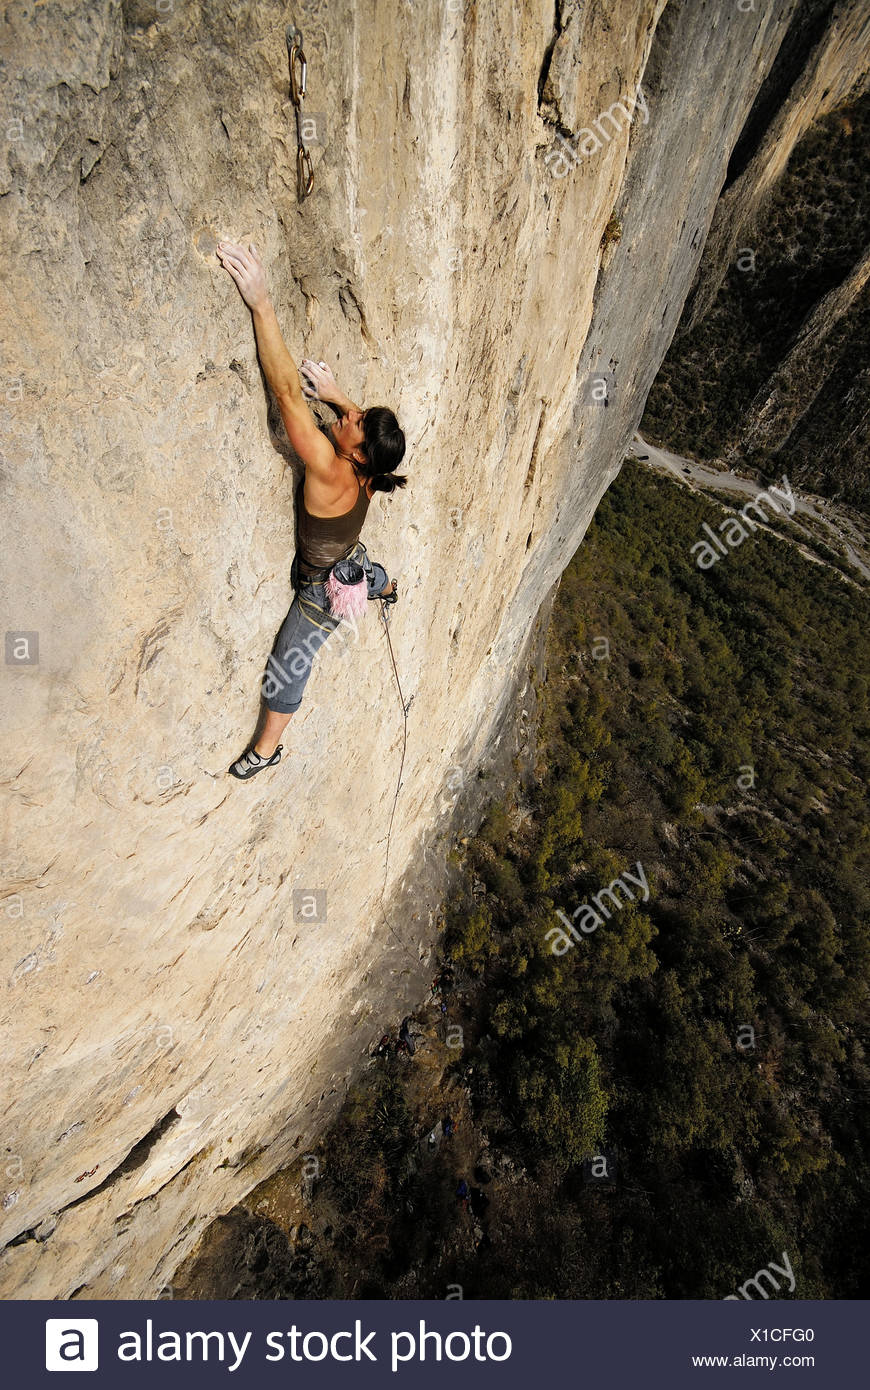 A rock climber ascends a steep rock face in Mexico. - Stock Image